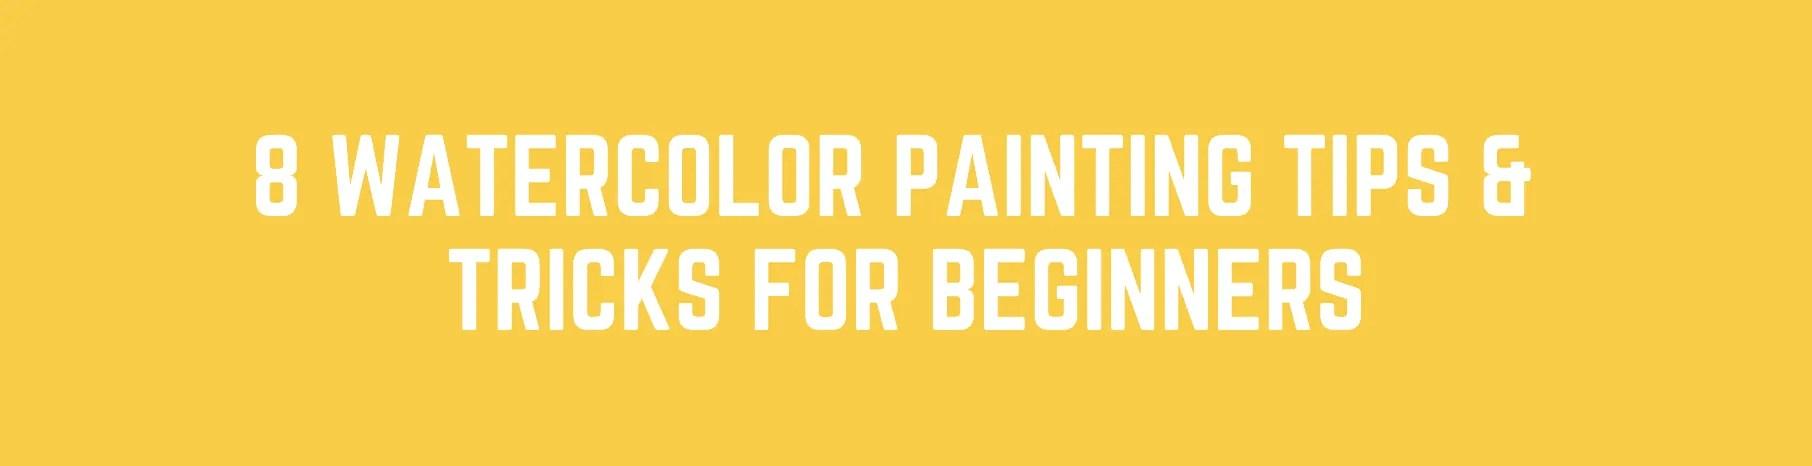 WATERCOLOR PAINTING FOR BEGINNERS